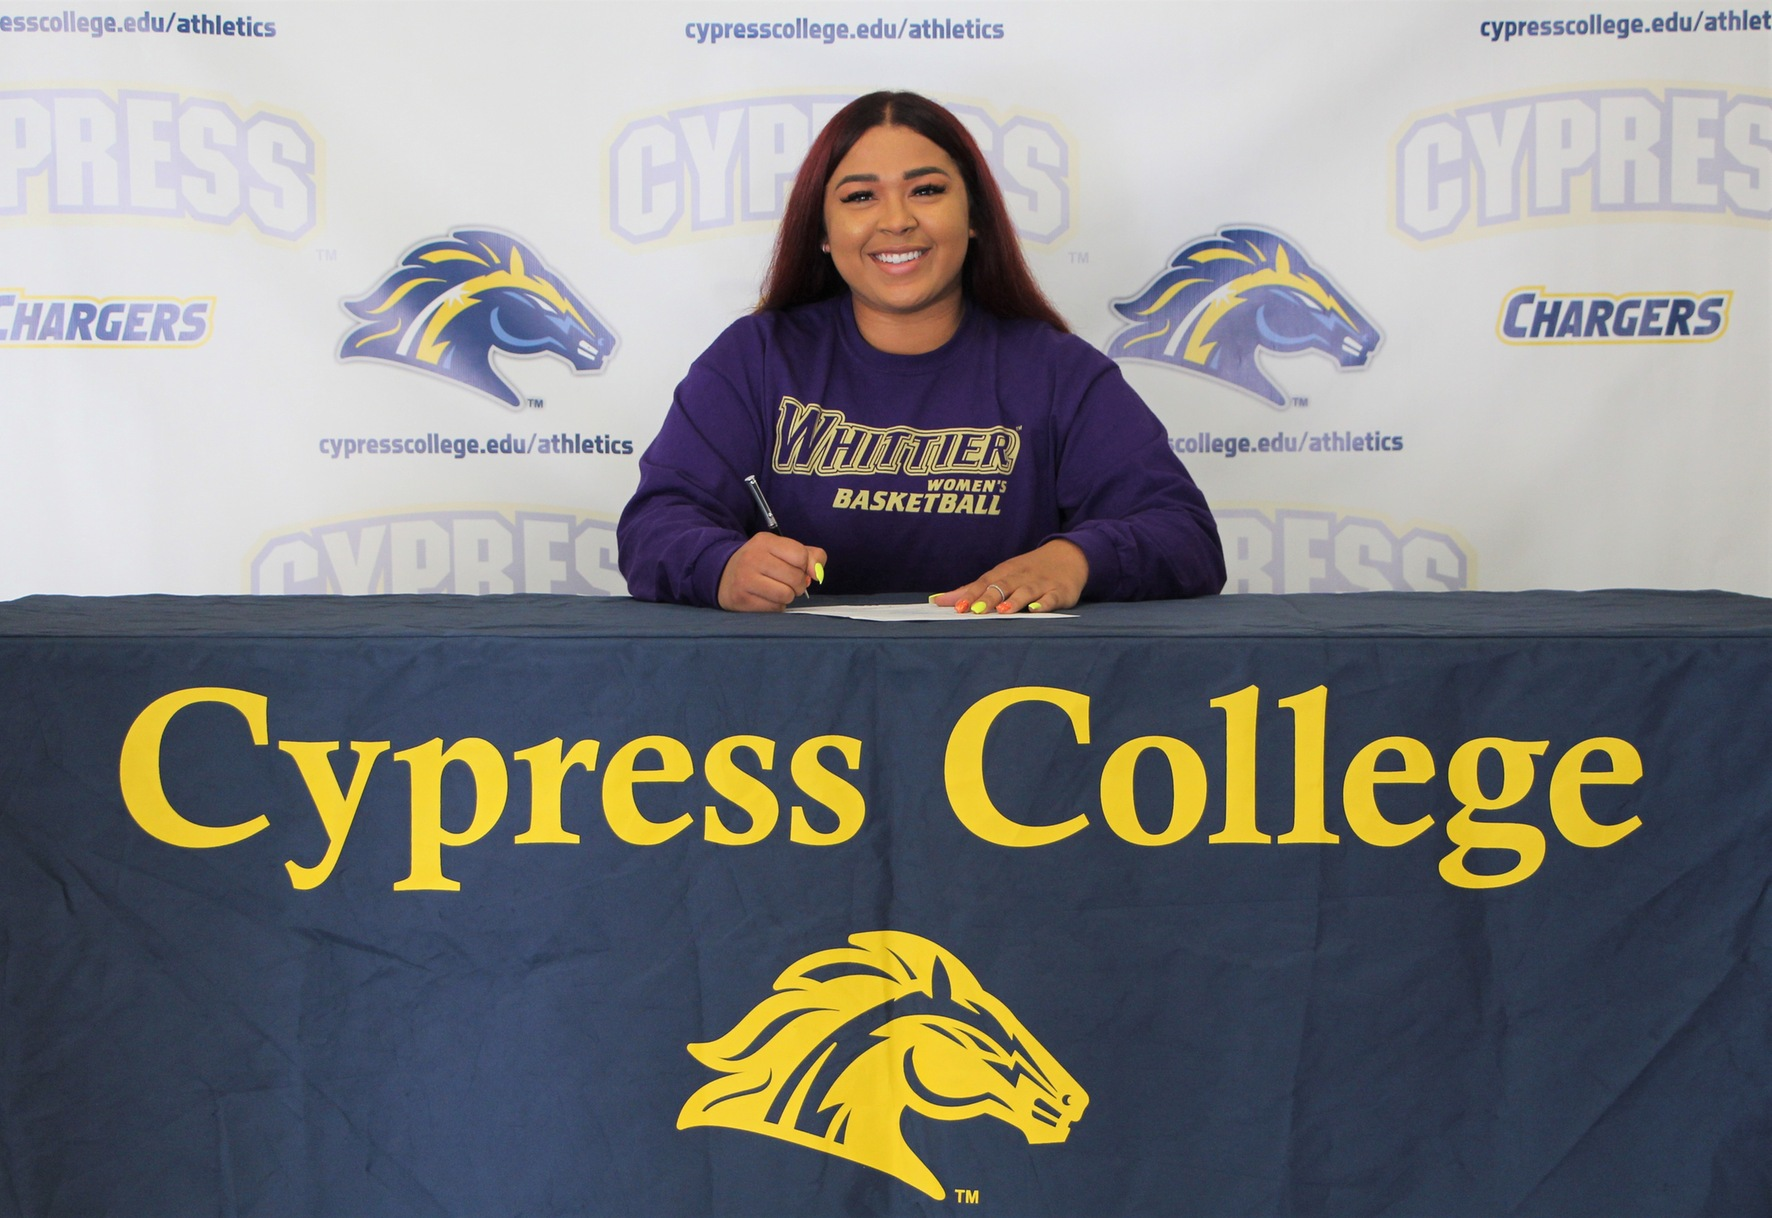 Christa Evans Commits to Whittier College